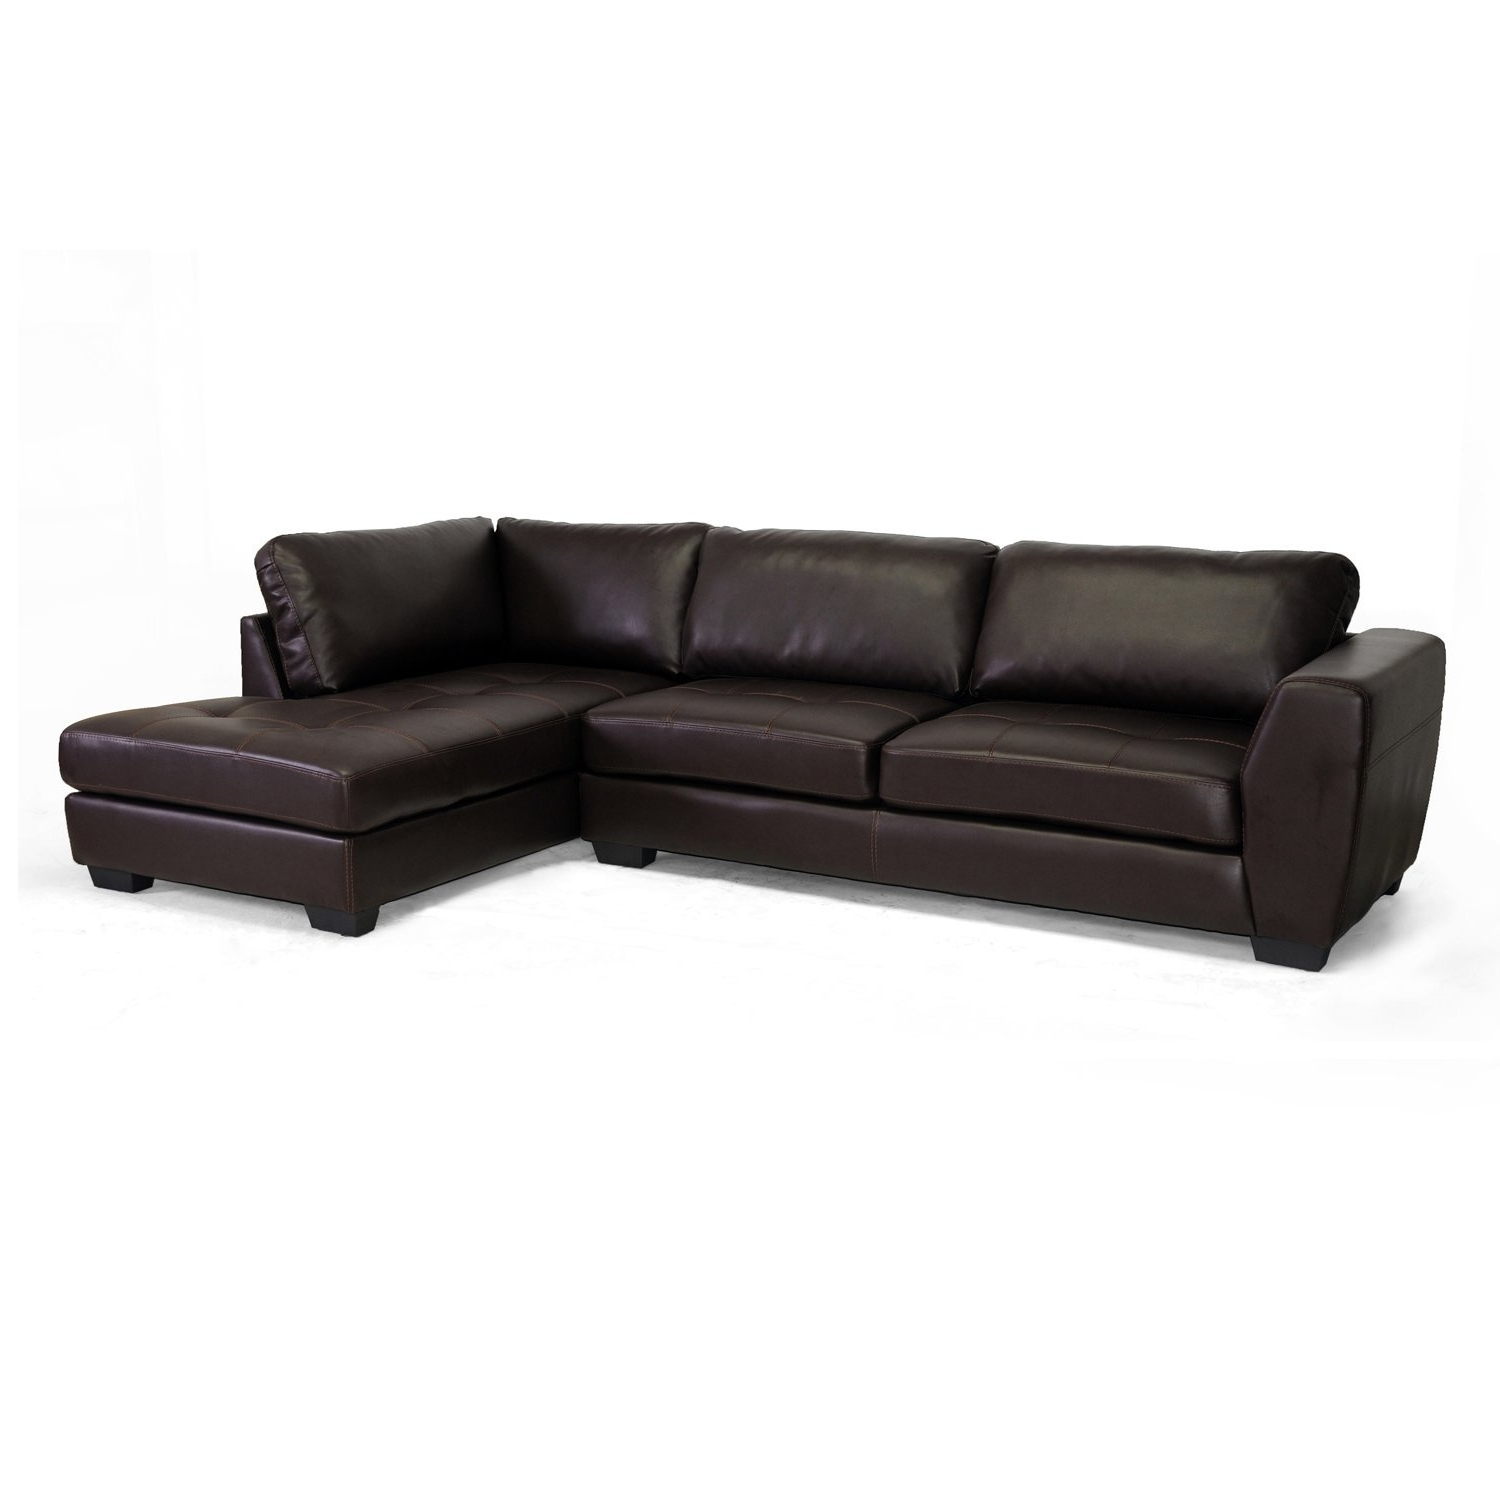 Sectional Sofas With 2 Chaises Throughout Most Popular Amazon: Baxton Studio Orland Bonded Leather Modern Sectional (View 12 of 15)